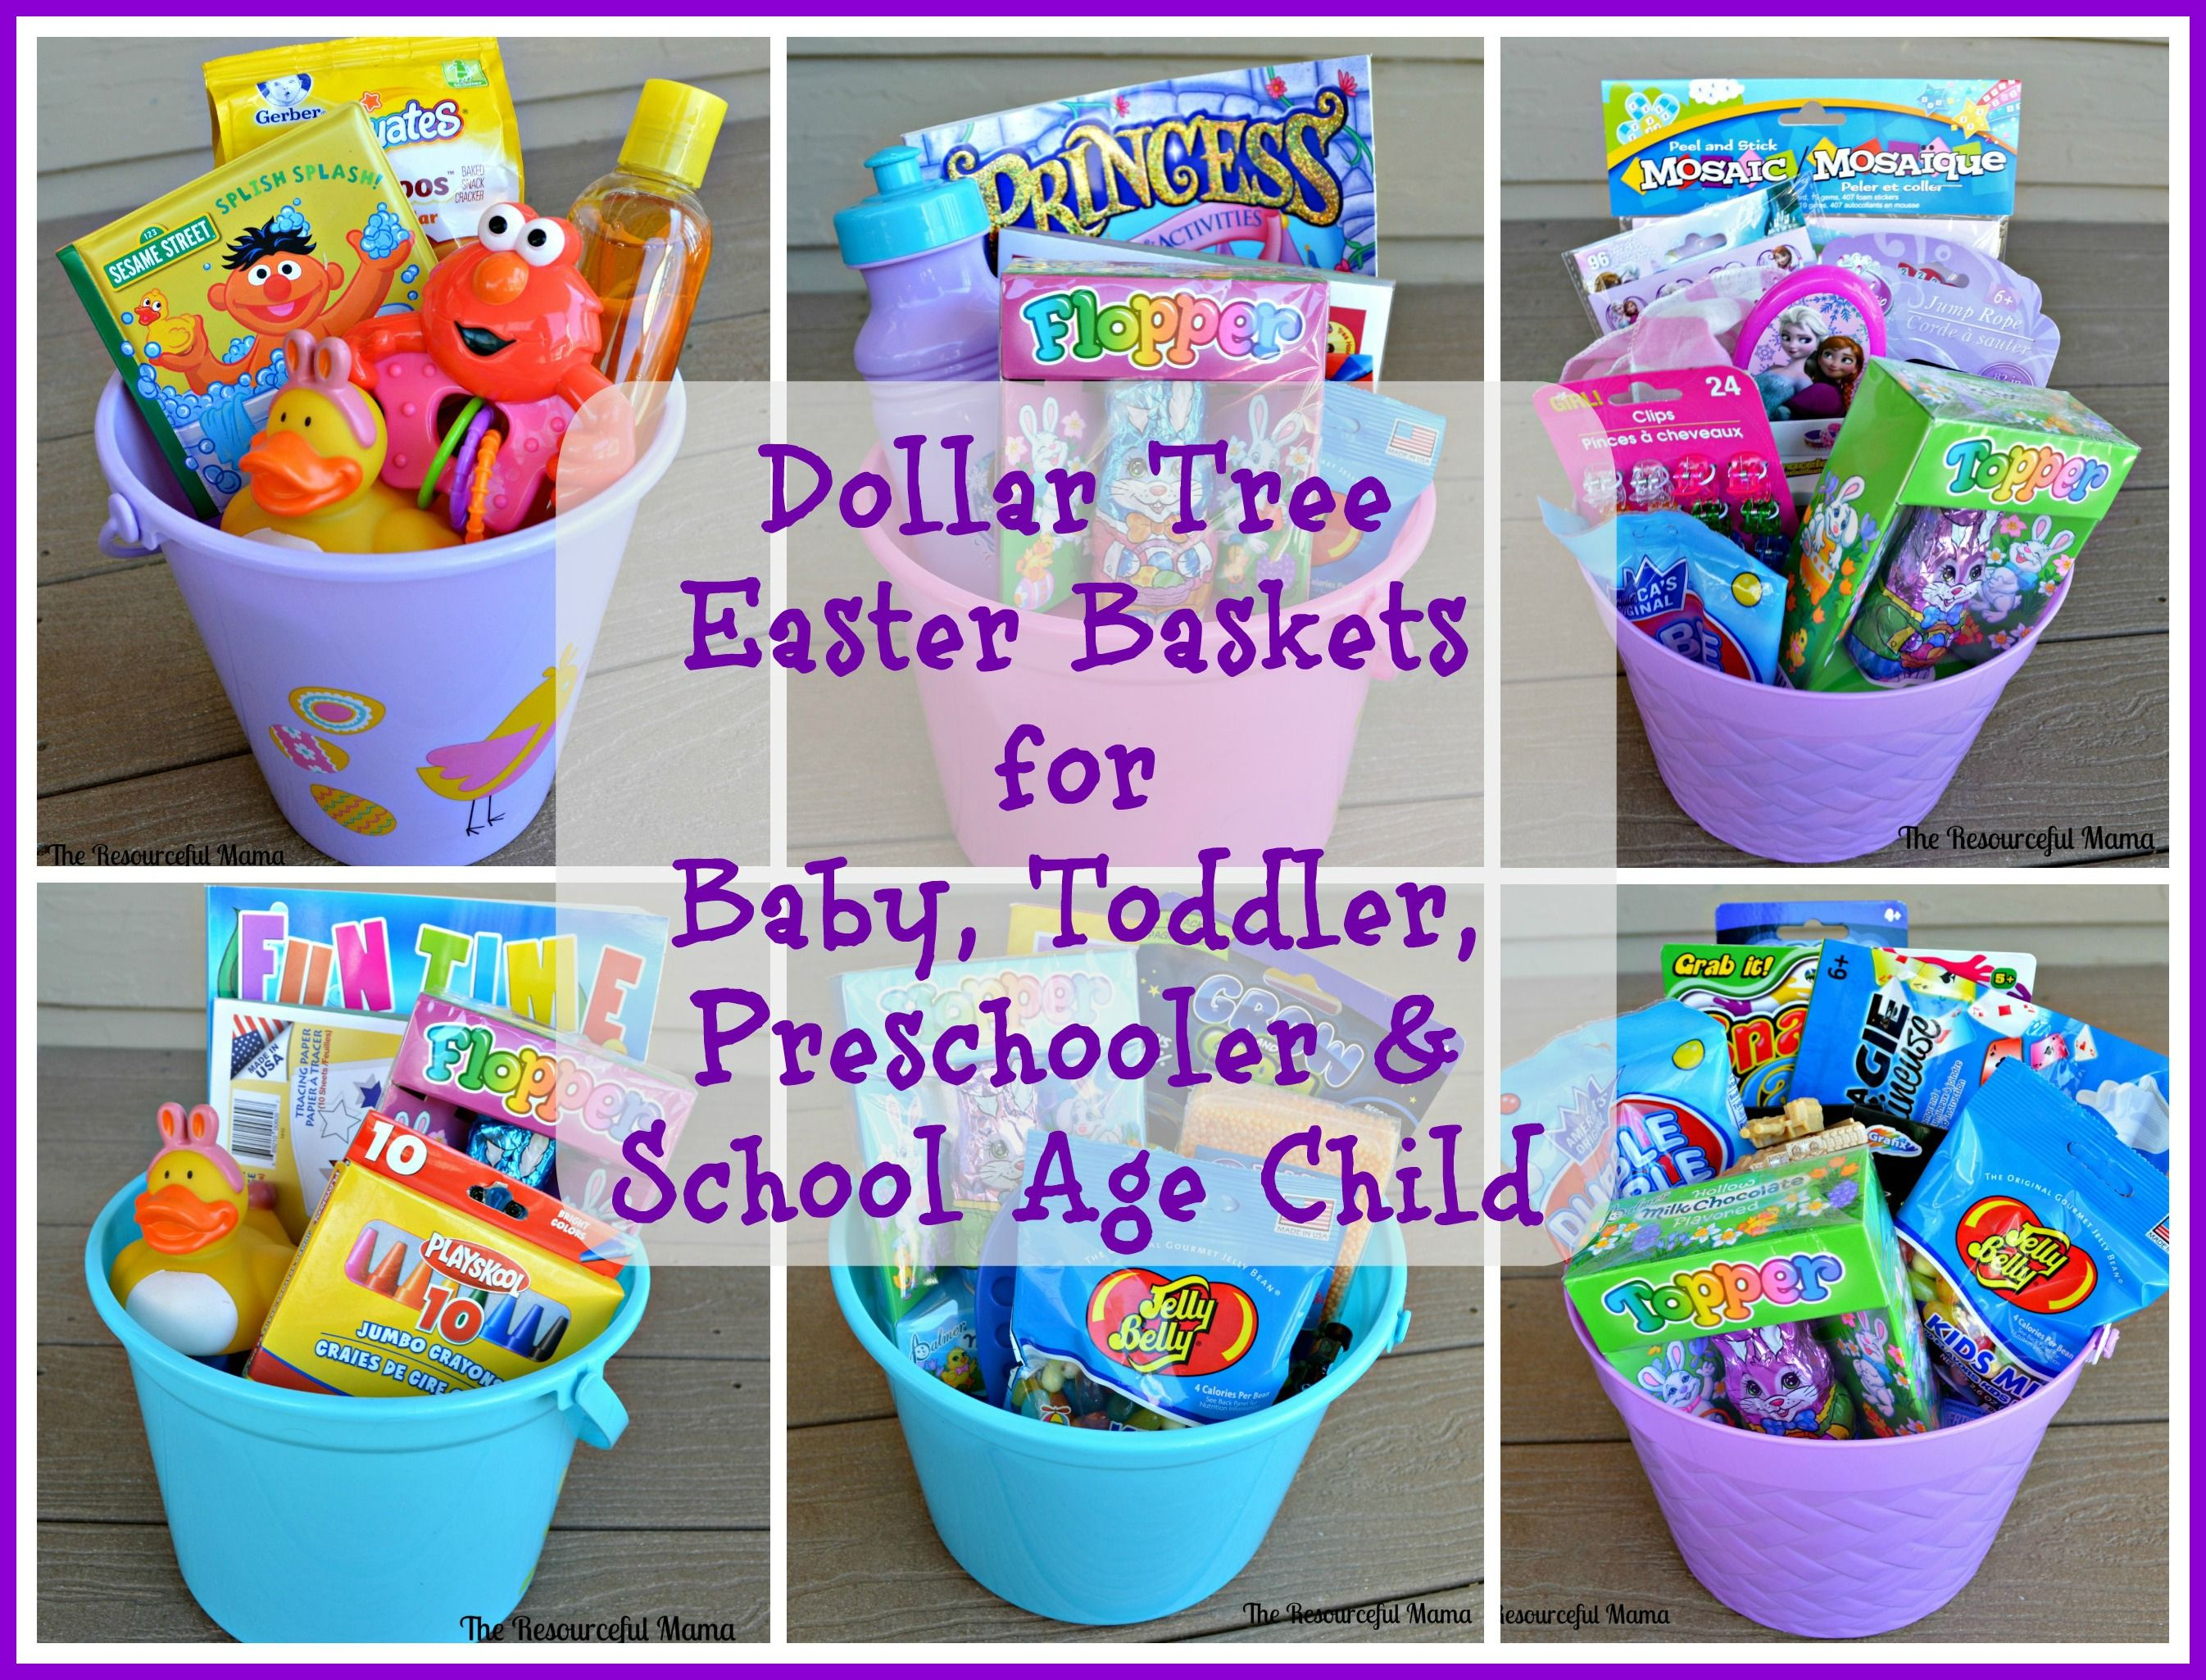 Dollar tree easter baskets easter baskets and easter dollar tree easter basket for baby toddler preschooler school age child negle Image collections